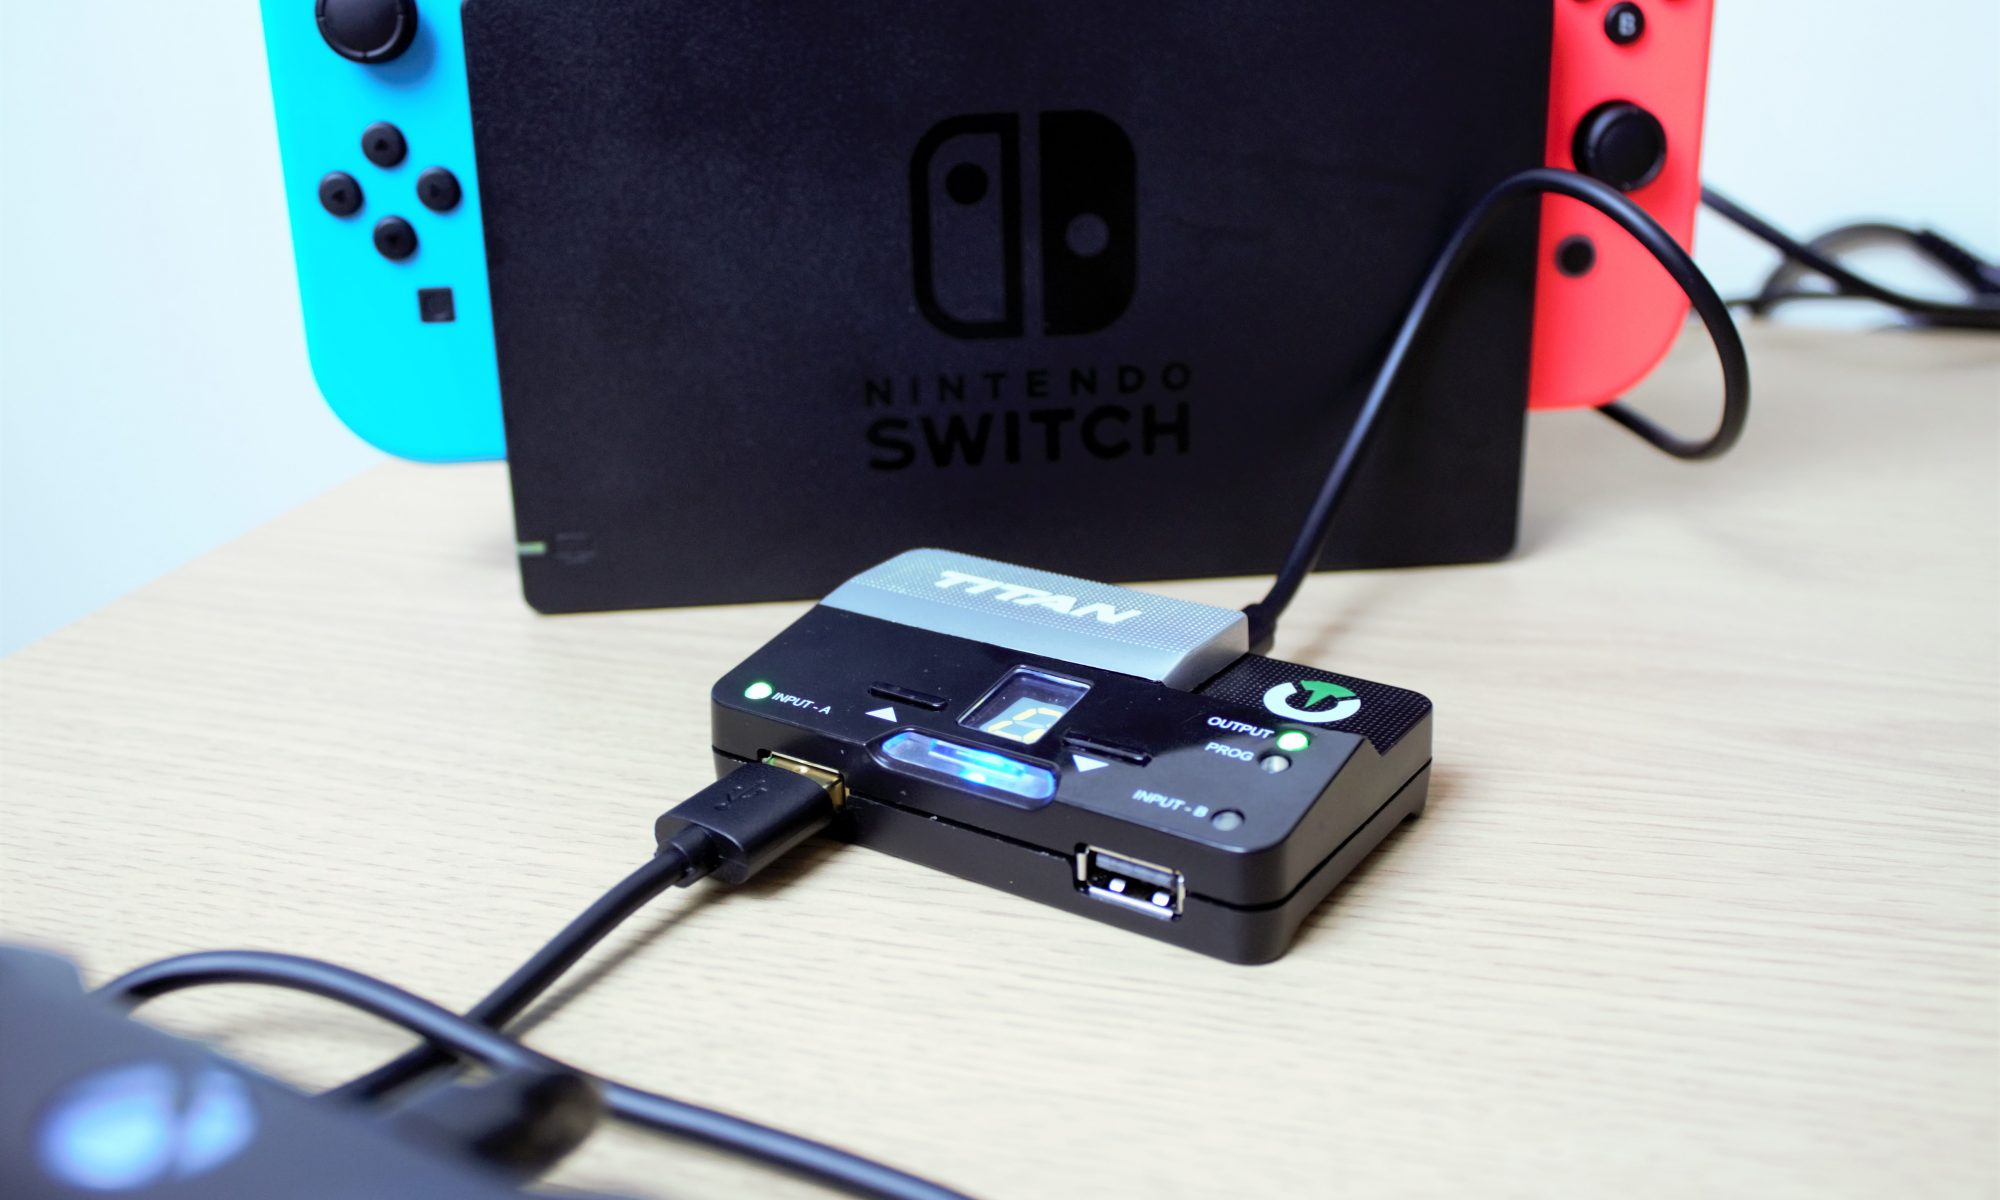 Photograph showing a Titan Two adapter connect to a Nintendo Switch in it's dock and with a corner of an Xbox One controller in the forground of the picture which is connected to the Titan Two.